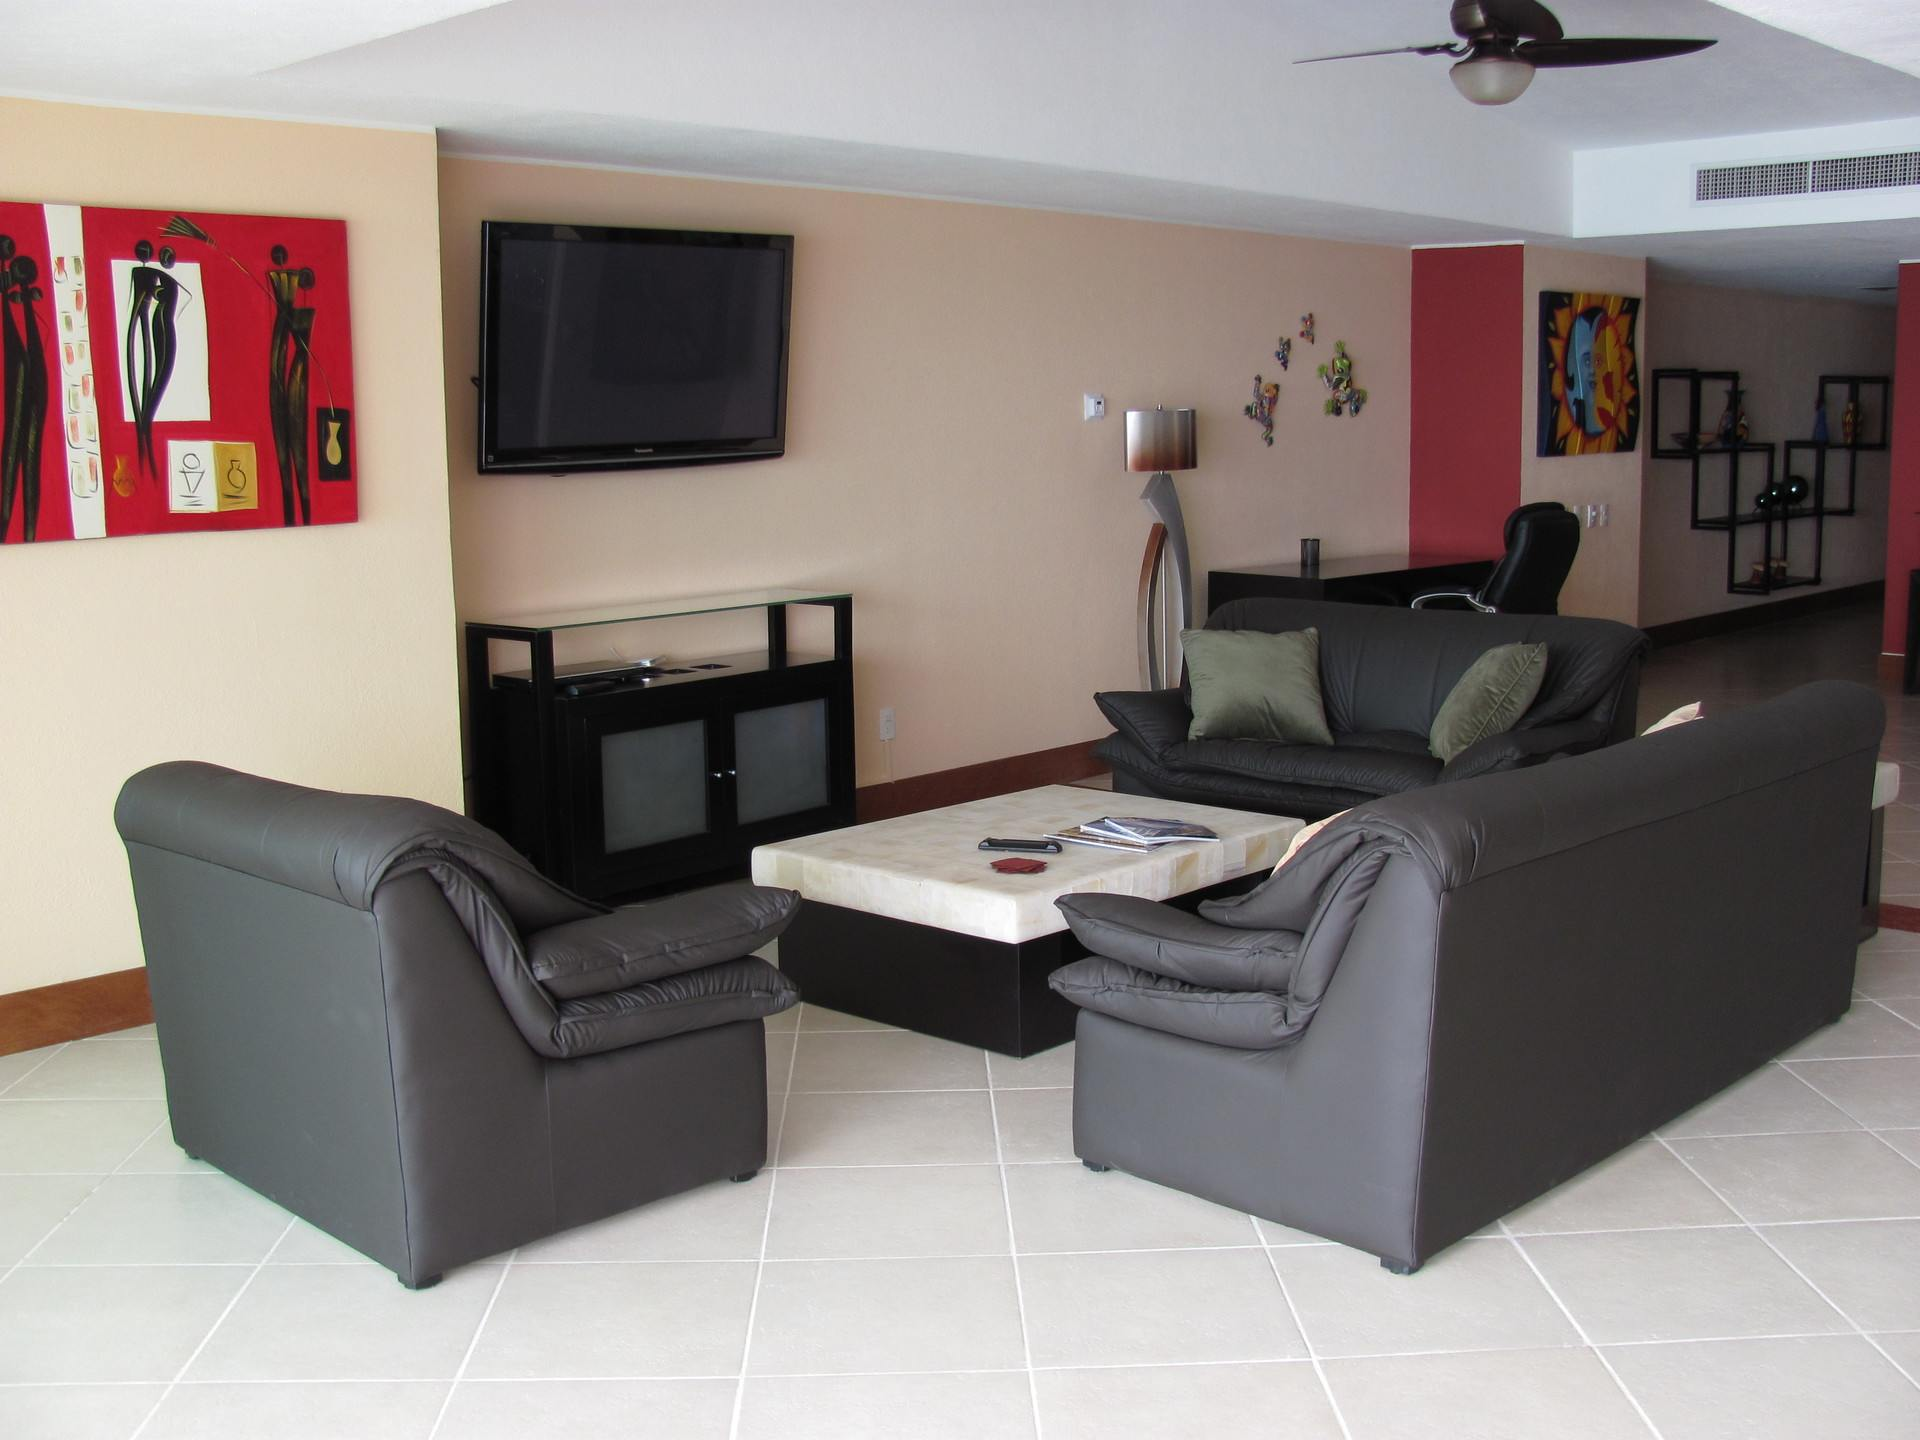 Artwotrk on the walls of the living room with TV in this 2 bedroom vacation condo for rent in Grand Venetian Puerto Vallarta